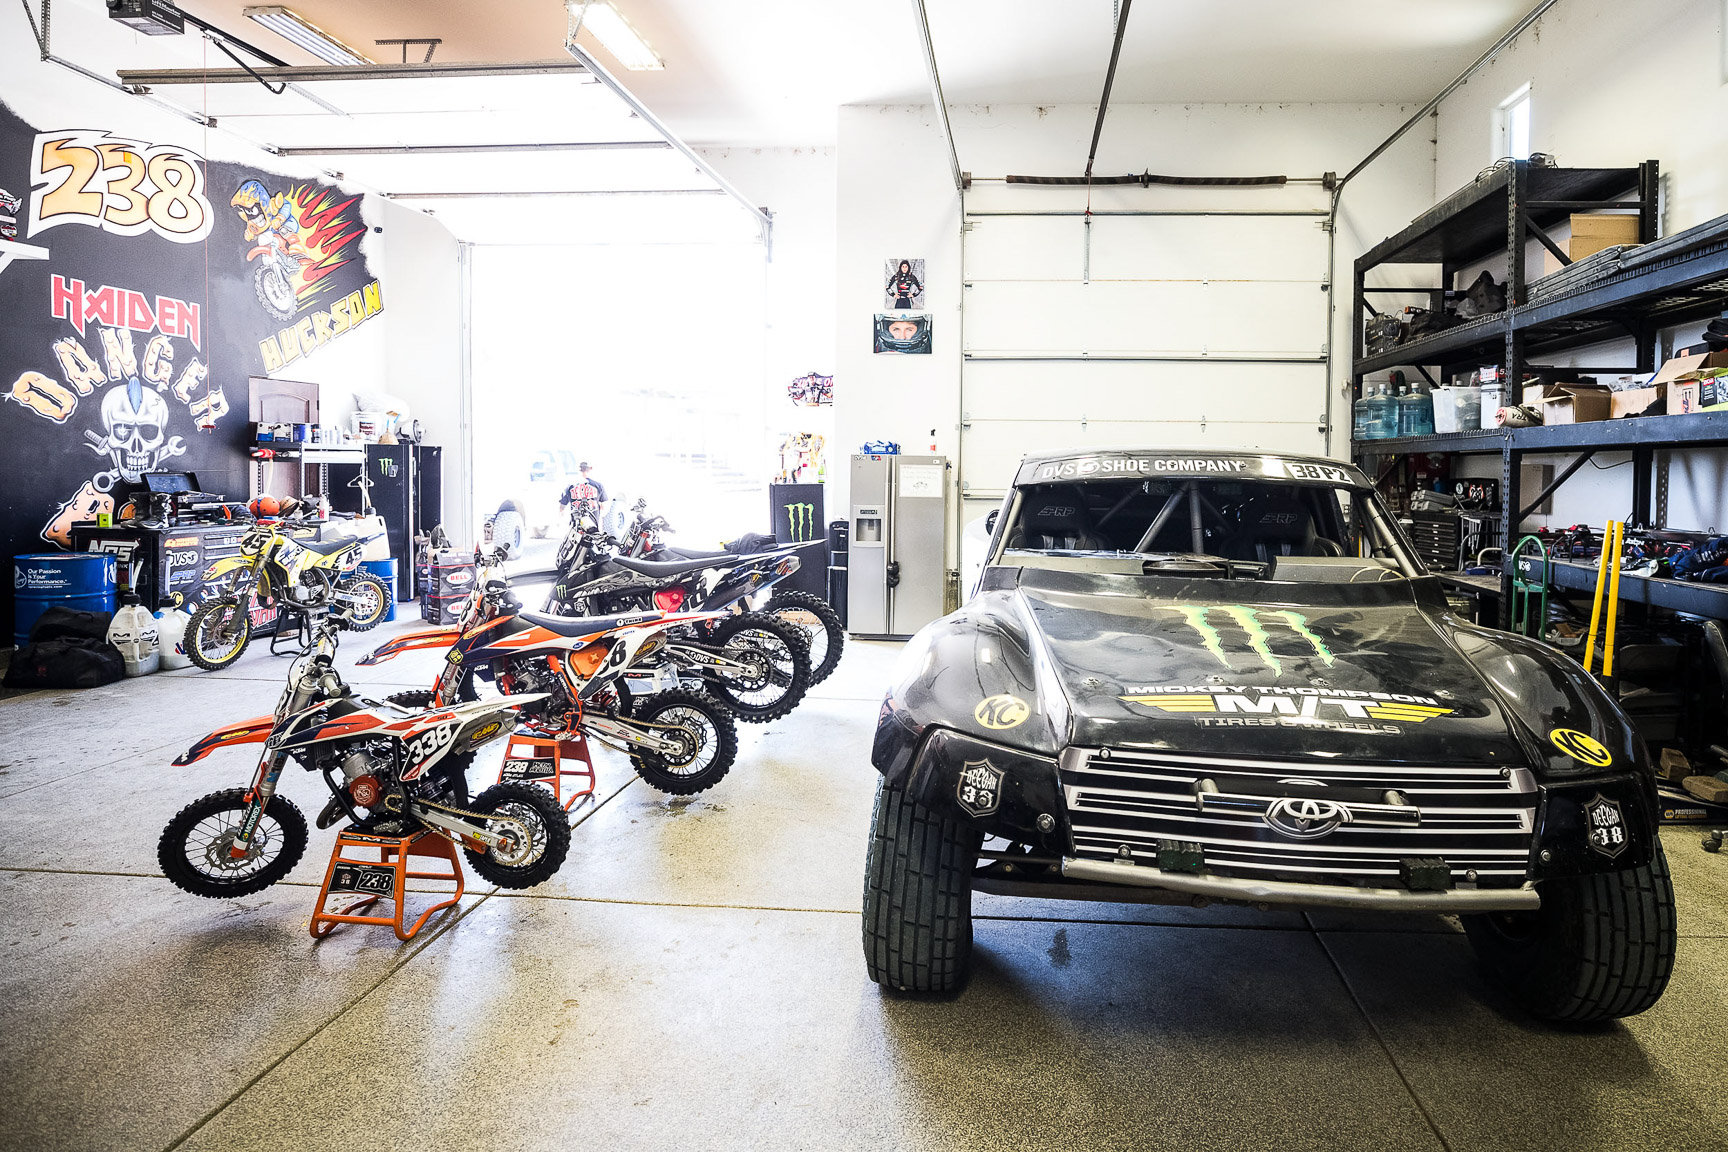 The Deegan garage